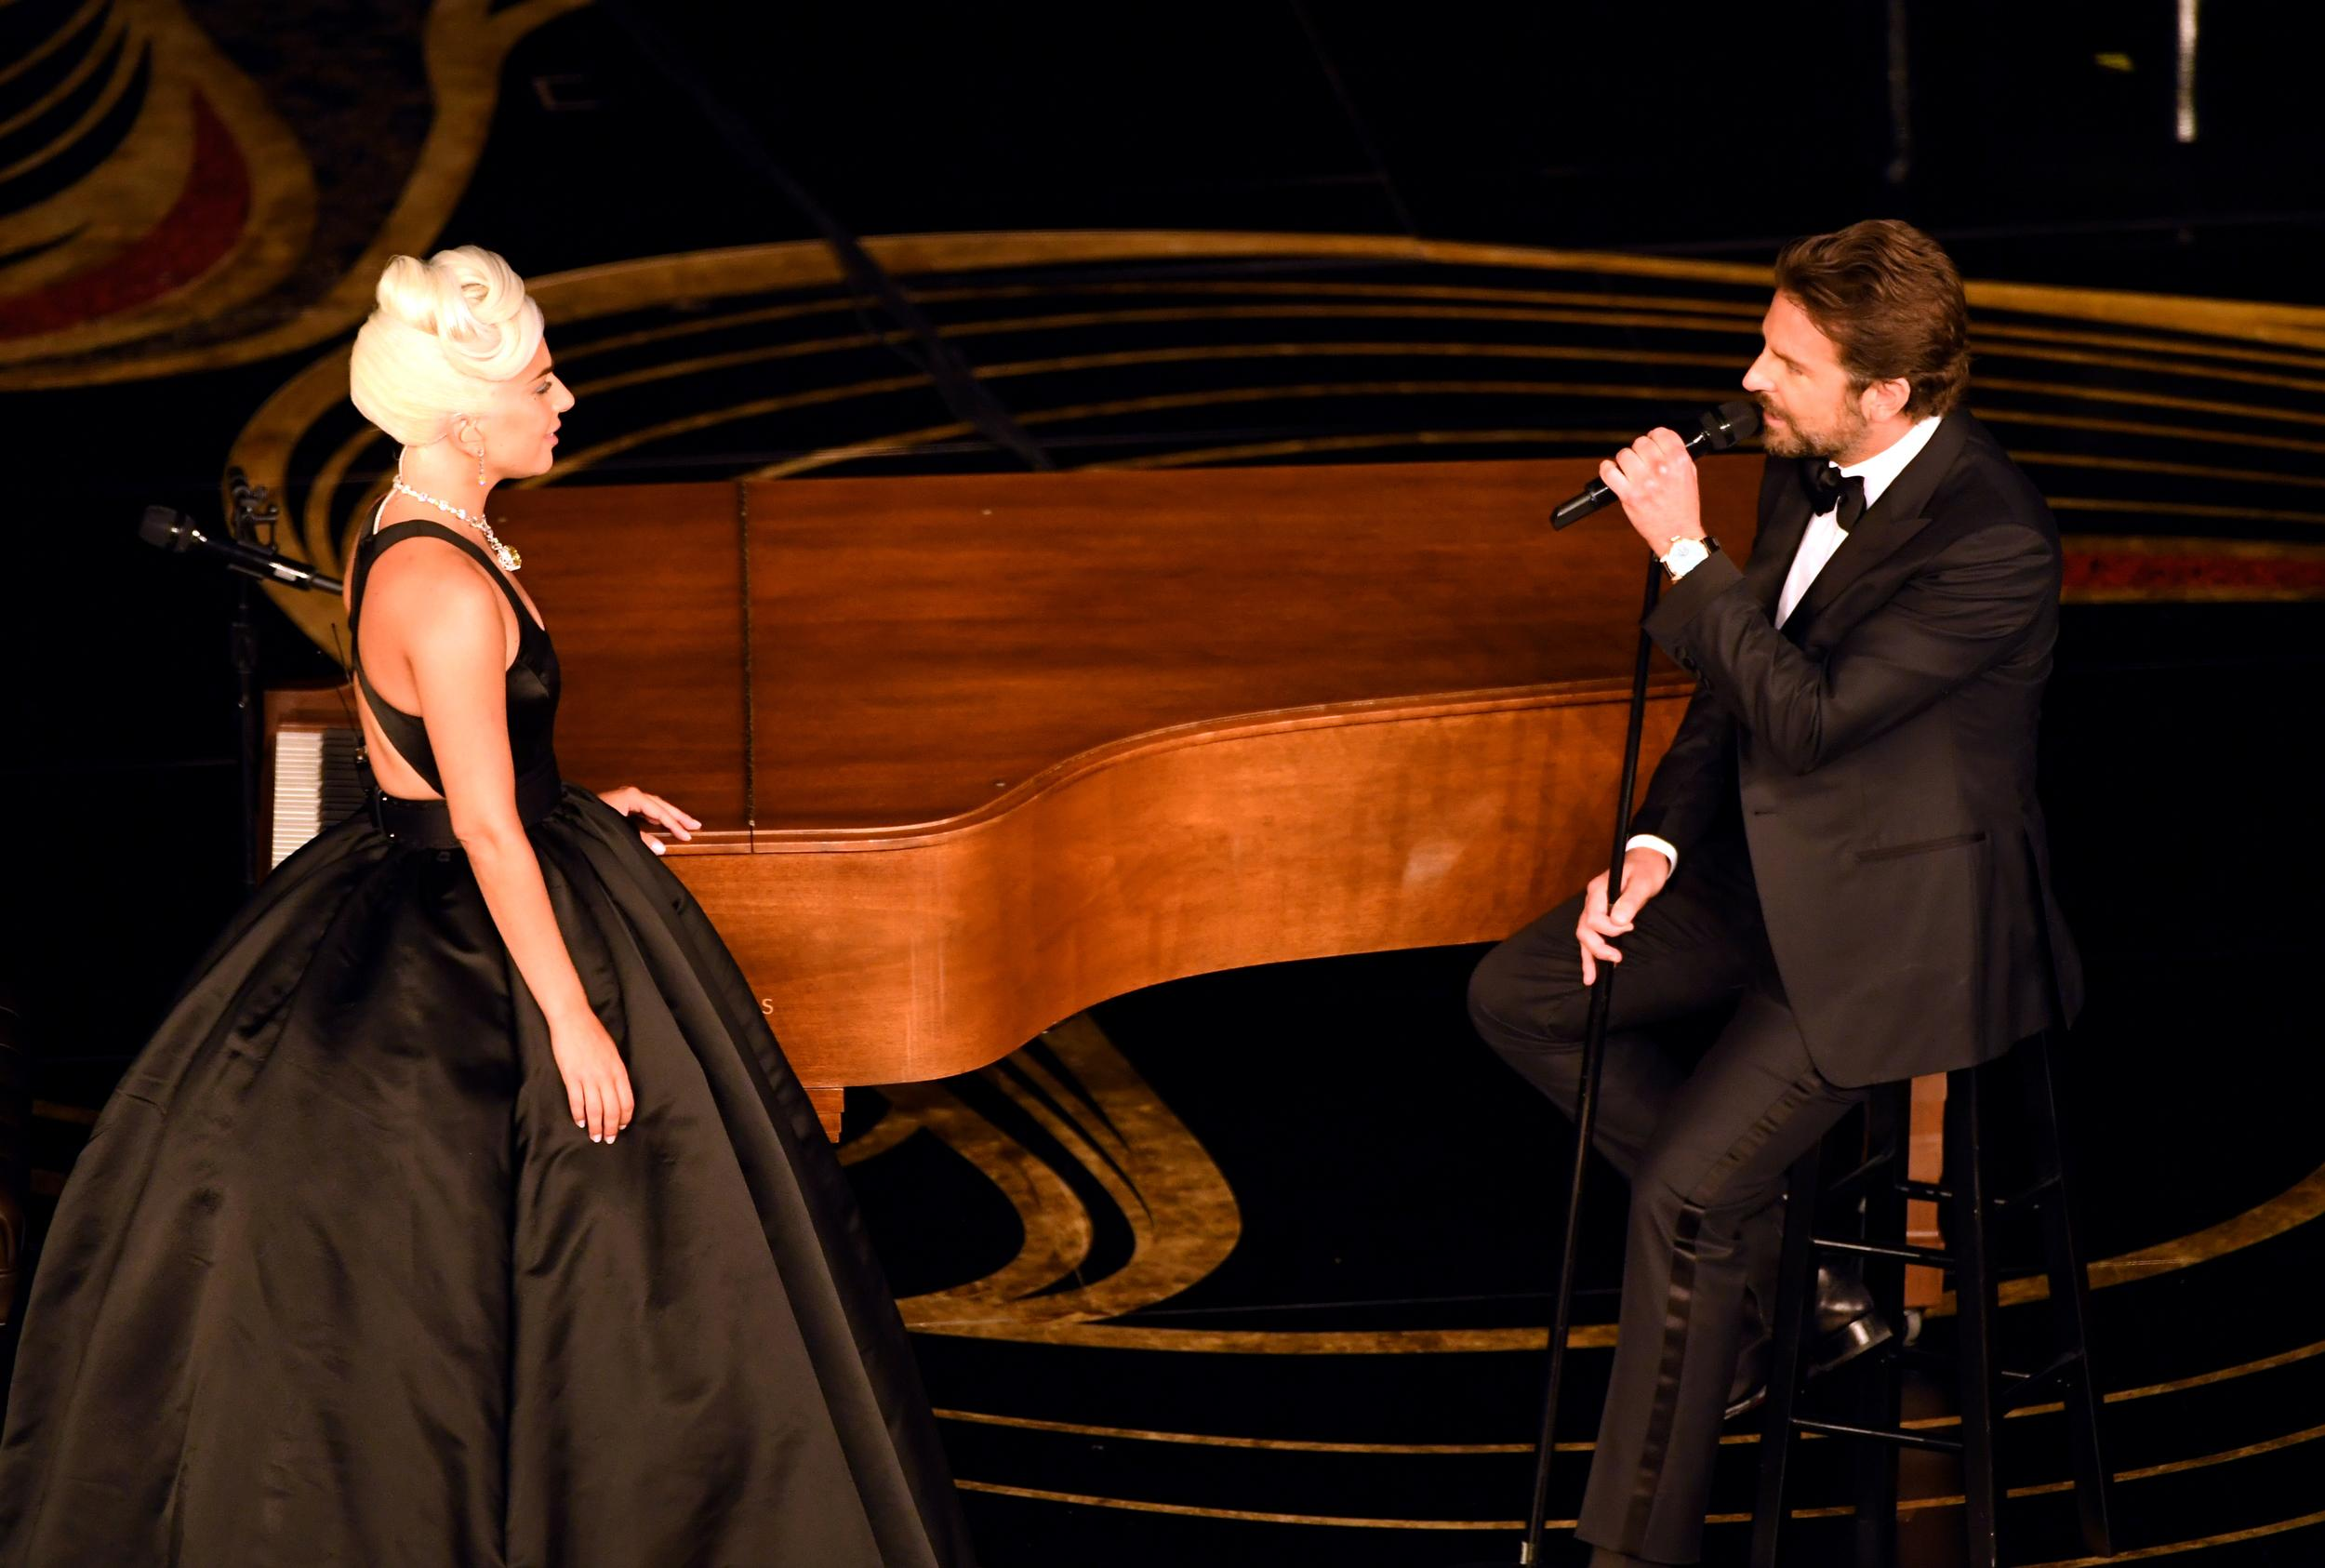 HOLLYWOOD, CALIFORNIA - FEBRUARY 24: (L-R) Lady Gaga and Bradley Cooper perform onstage during the 91st Annual Academy Awards at Dolby Theatre on February 24, 2019 in Hollywood, California. (Photo by Kevin Winter/Getty Images)